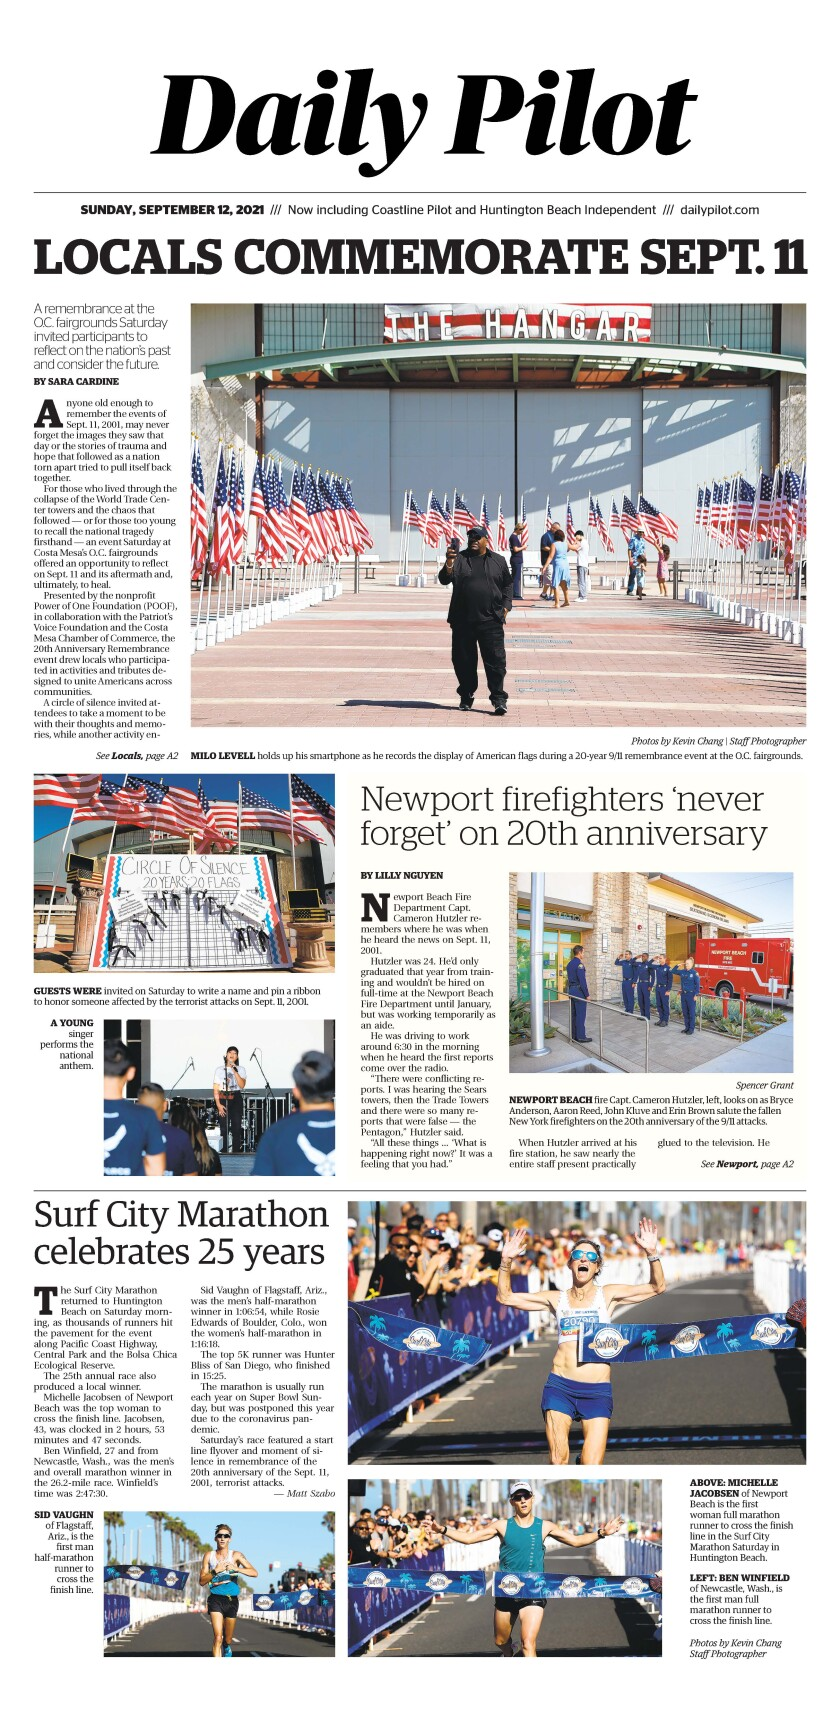 Front page of Daily Pilot e-newspaper for Sunday, Sept. 12, 2021.